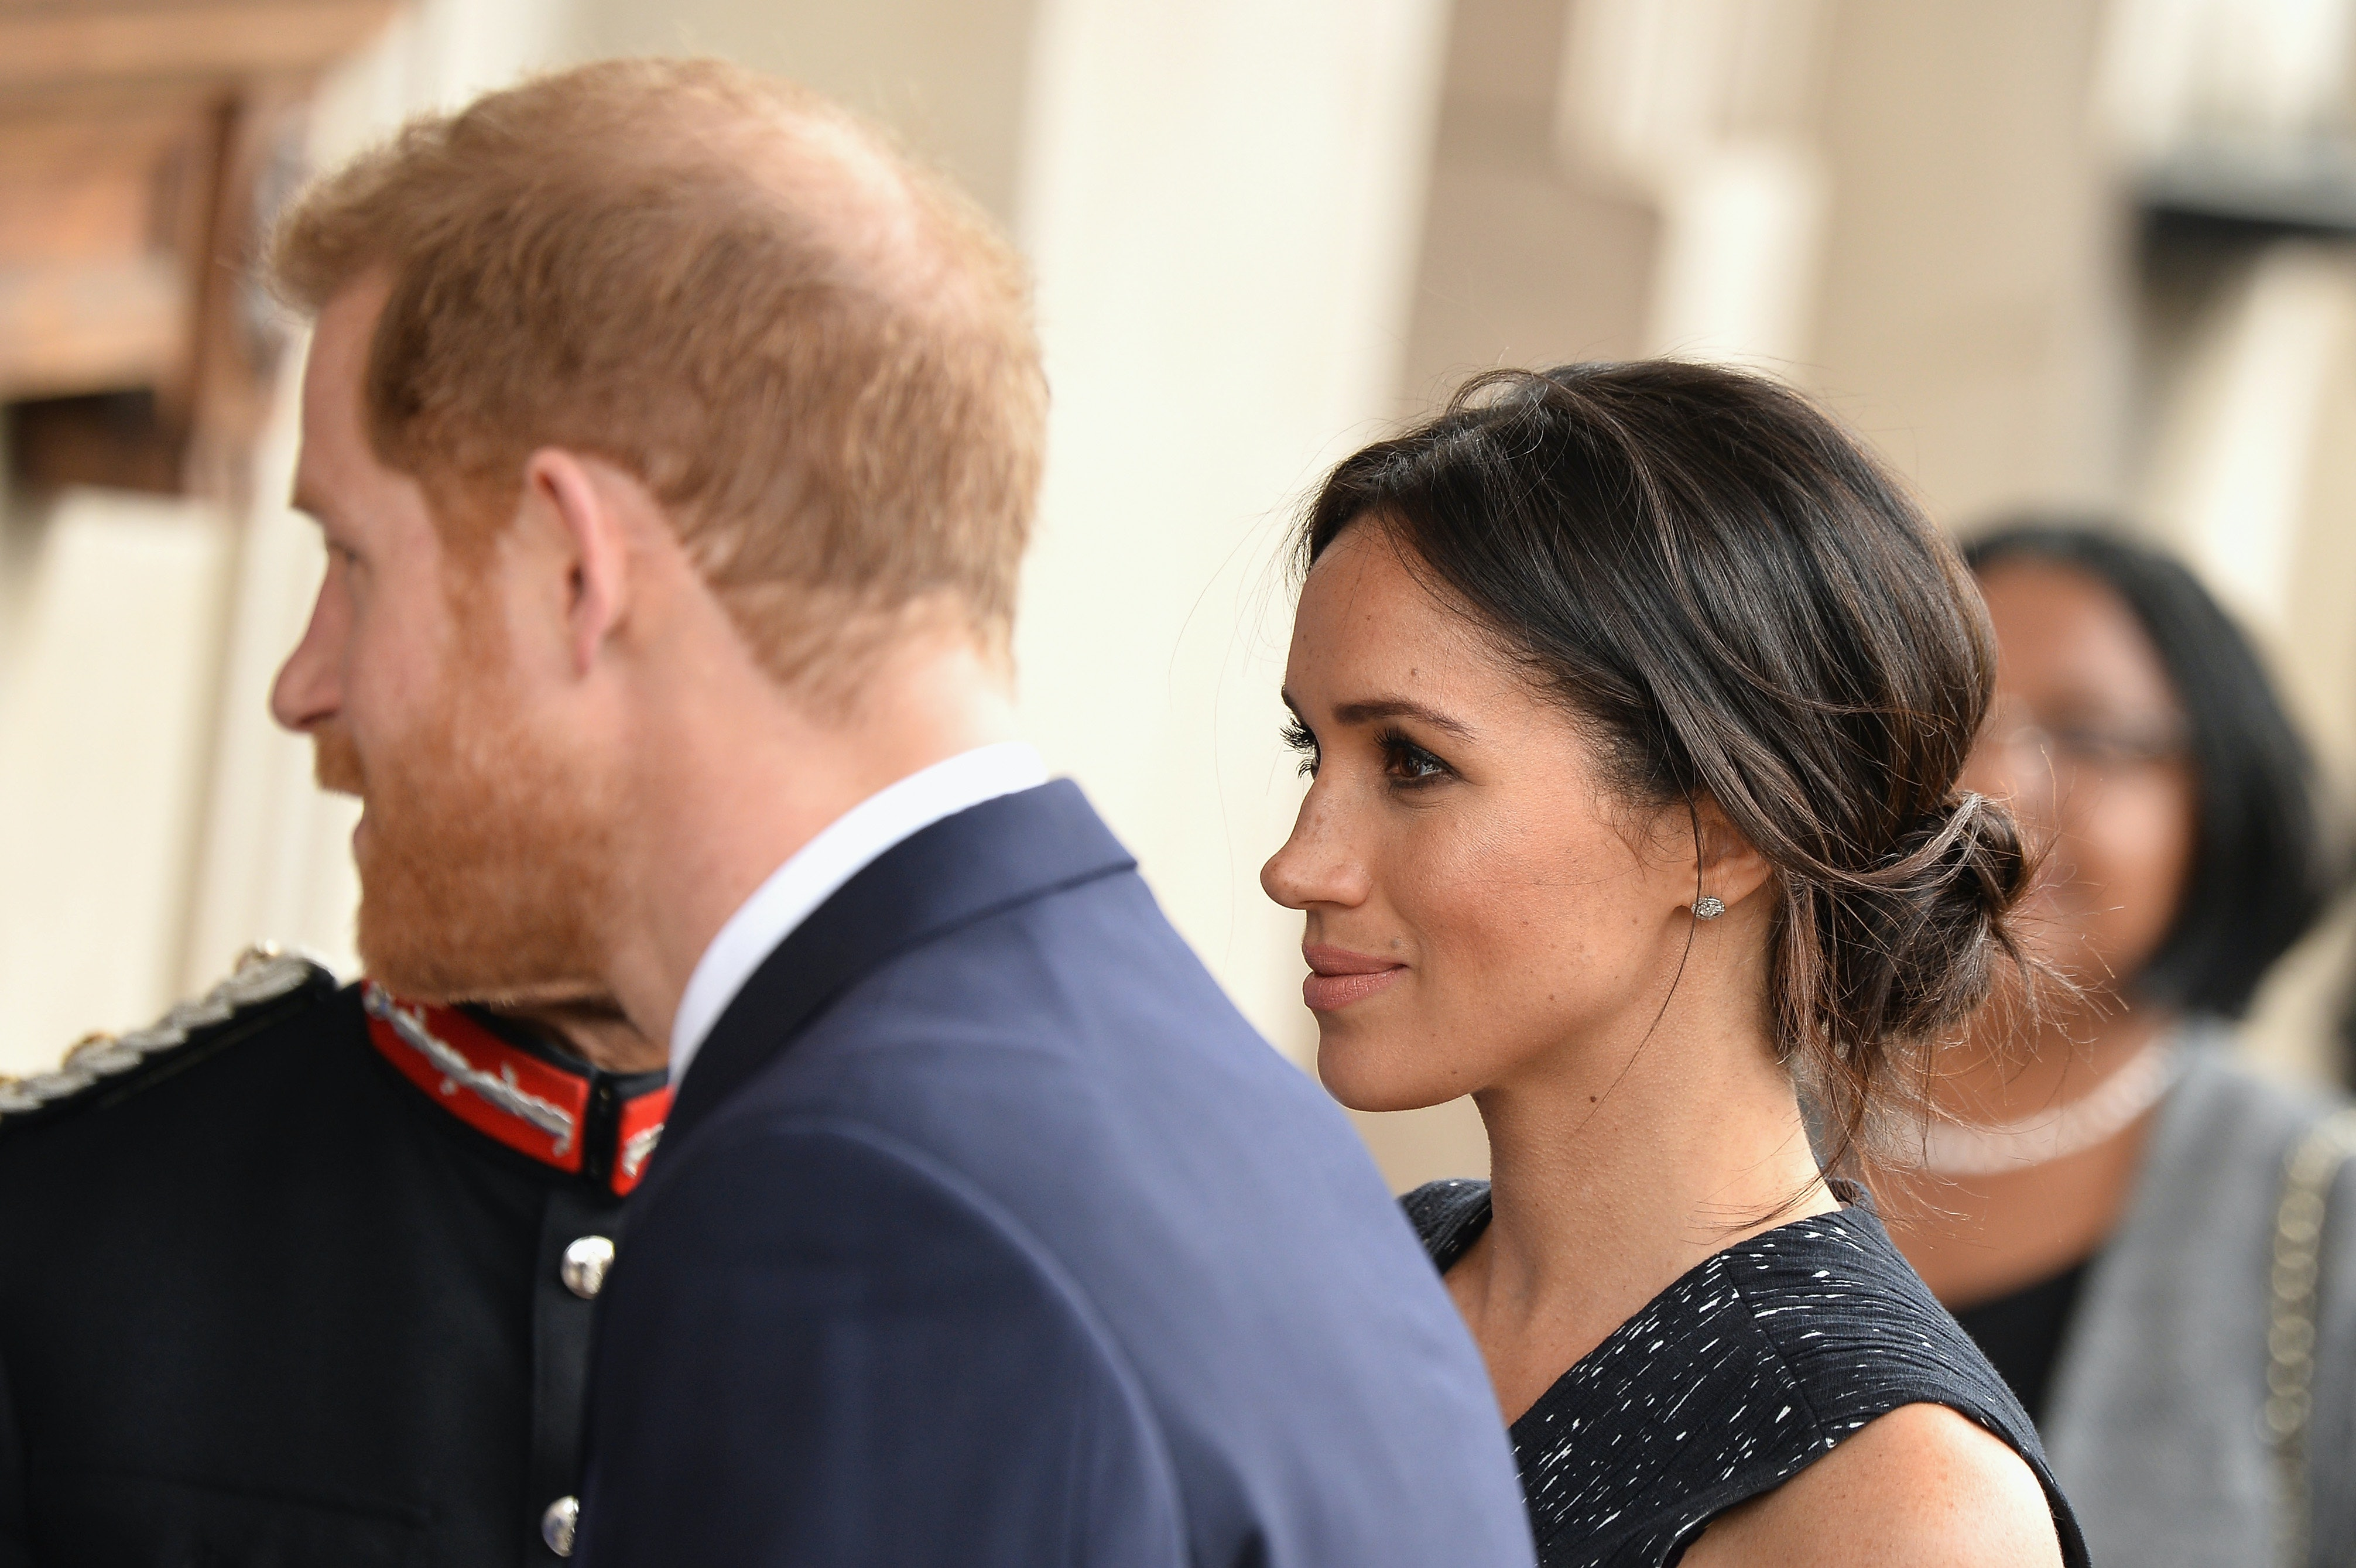 Where To Watch The Royal Wedding.What Channel Is The Royal Wedding On Where To Watch Prince